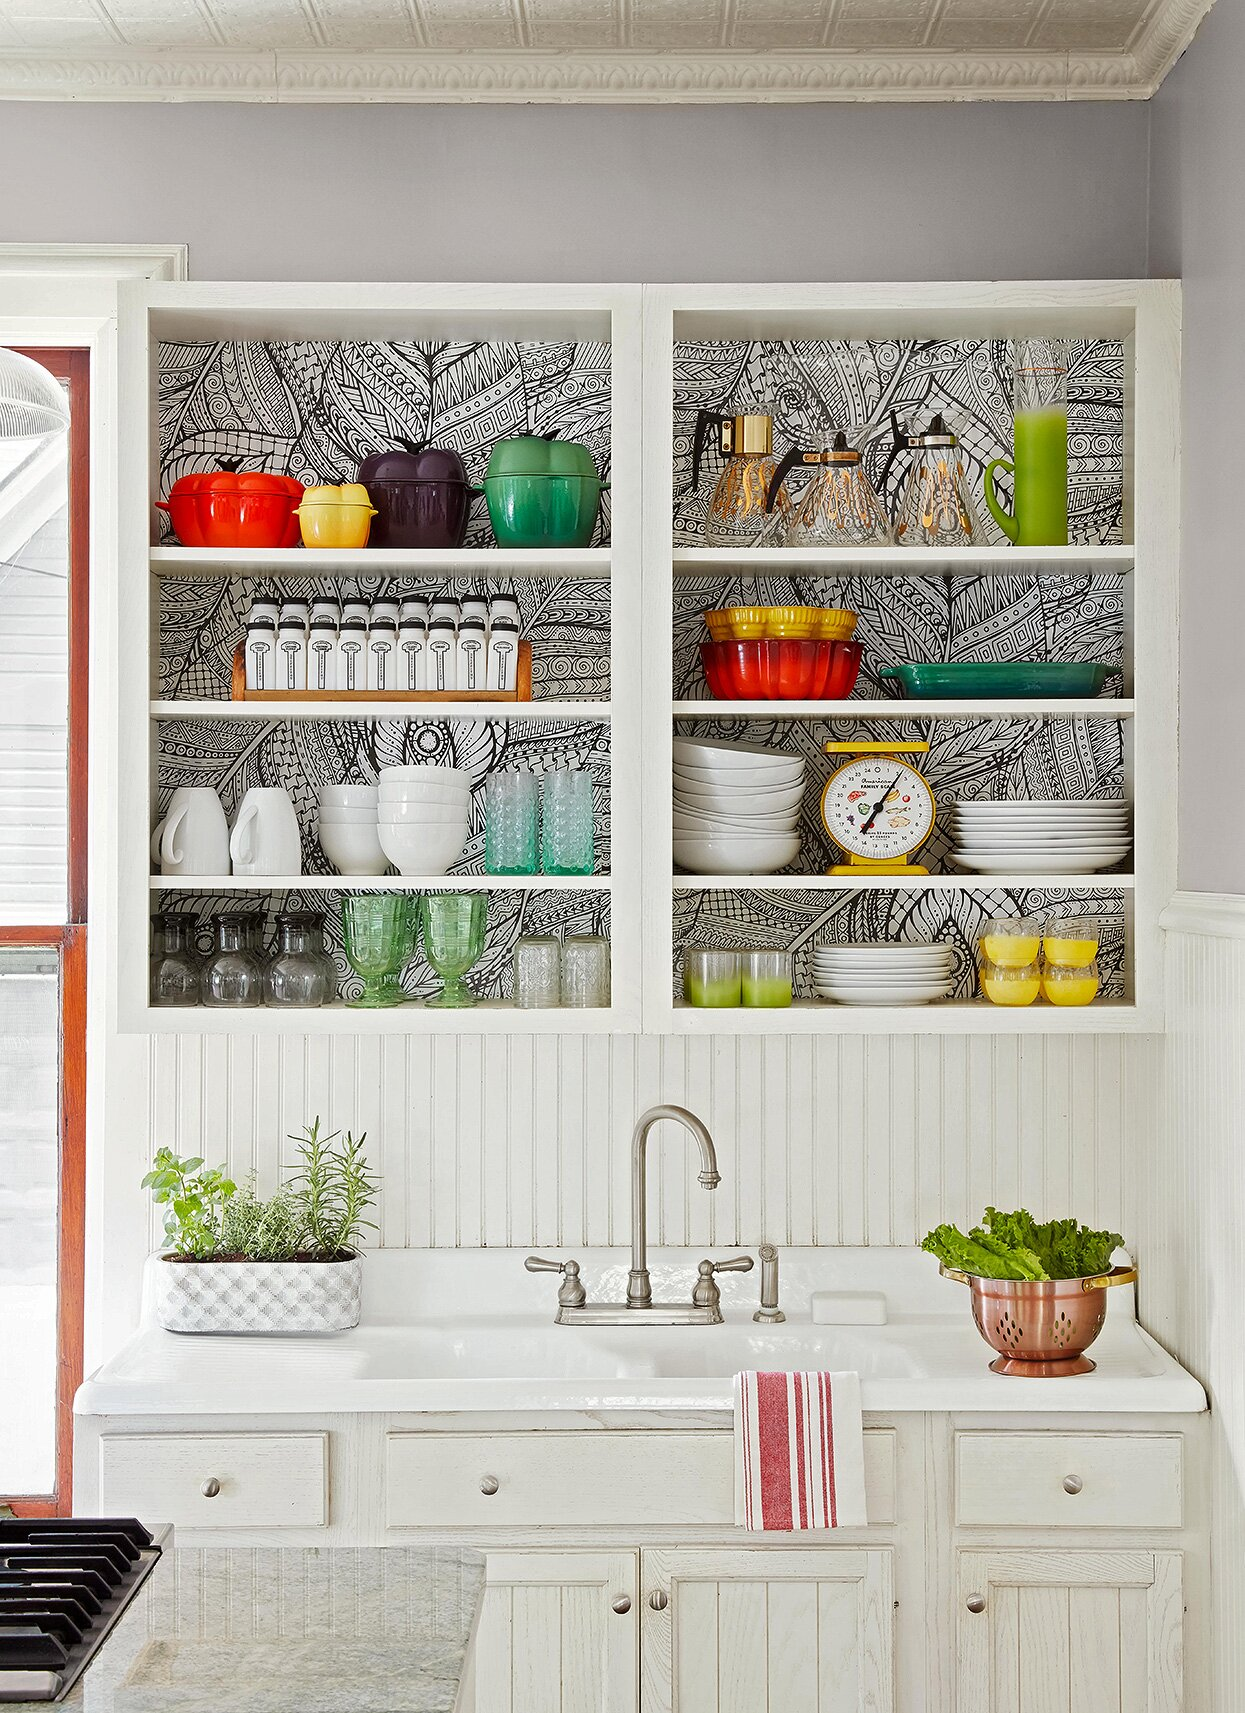 31 Creative Ways To Store Dishes And Utensils That Go Beyond Cabinetry Better Homes Gardens